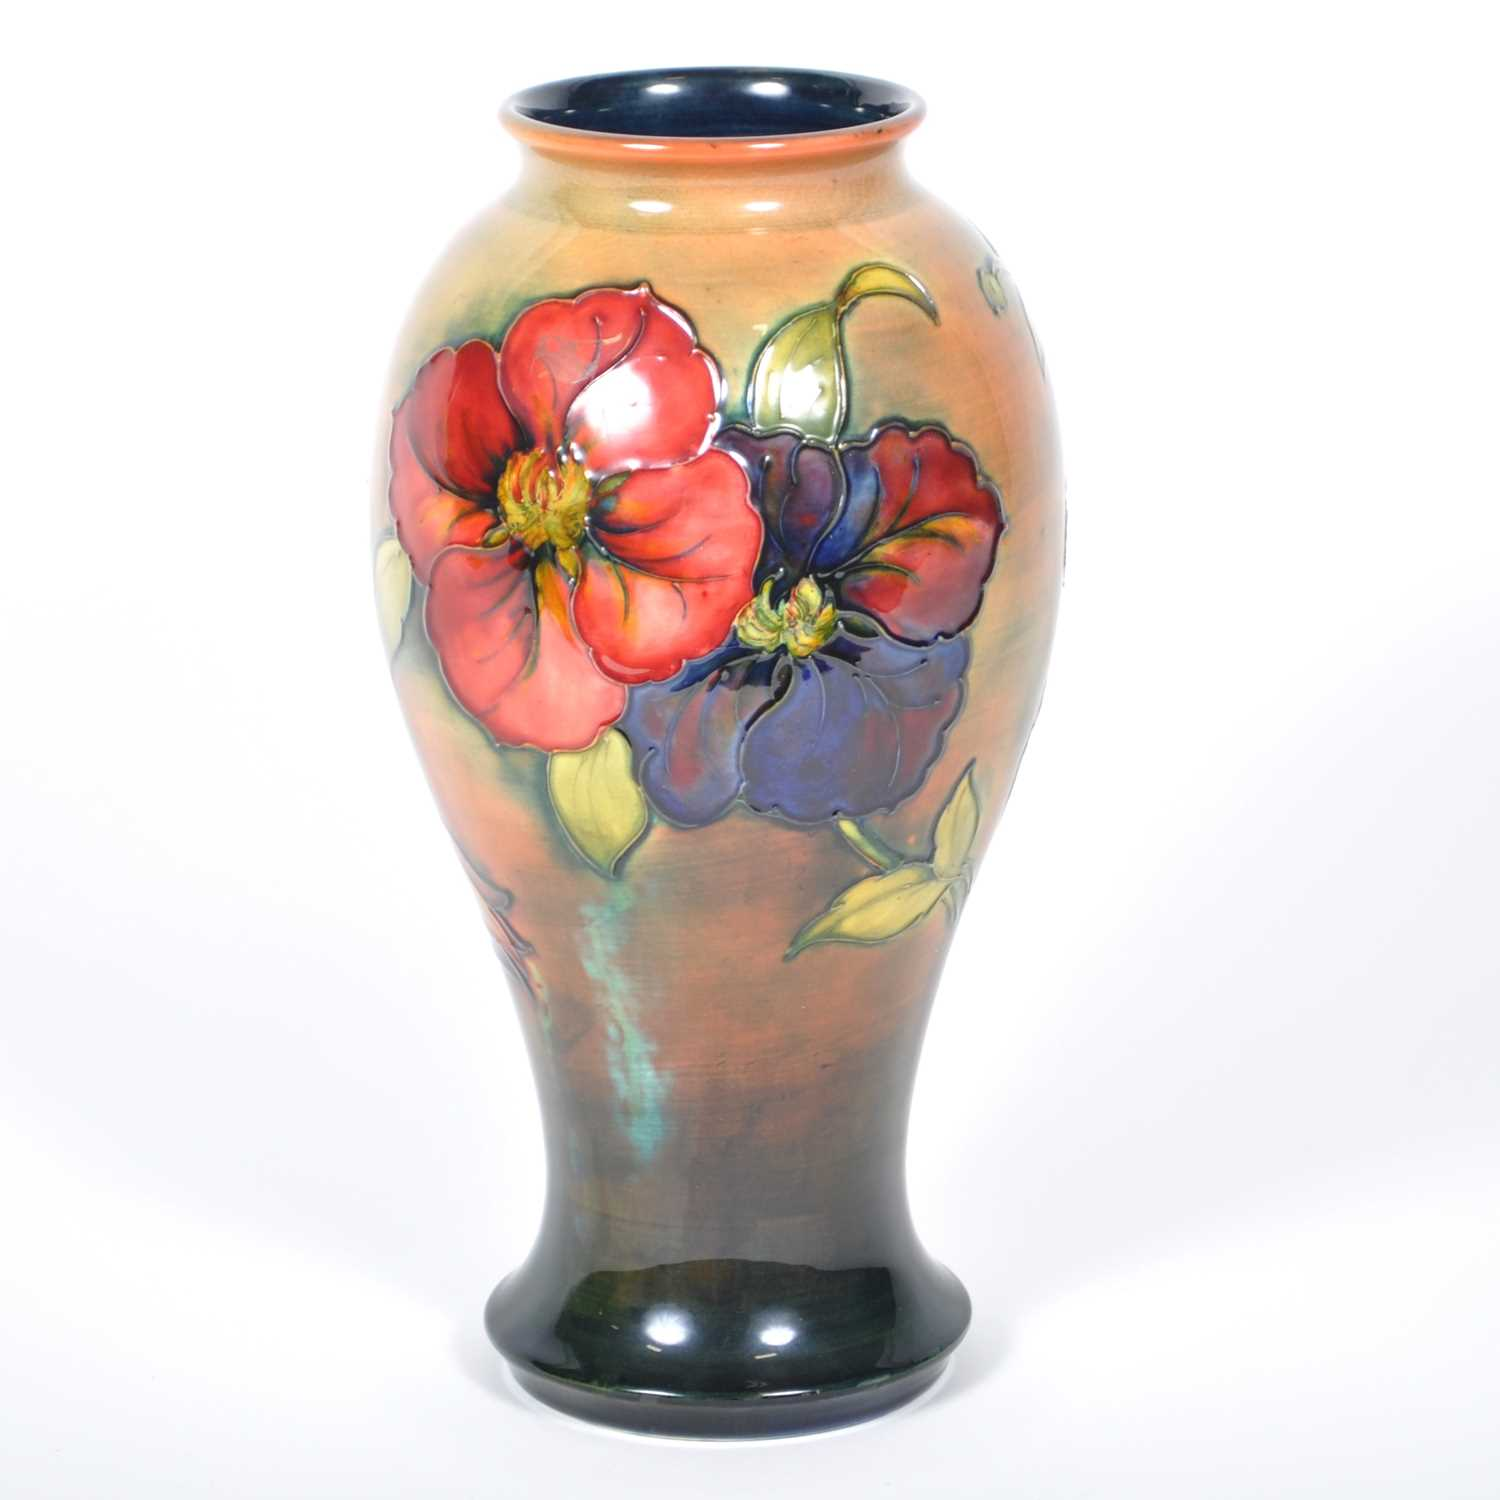 Lot 547-A Moorcroft Pottery flambé vase, 'Anemone' designed by Walter Moorcroft, circa 1950